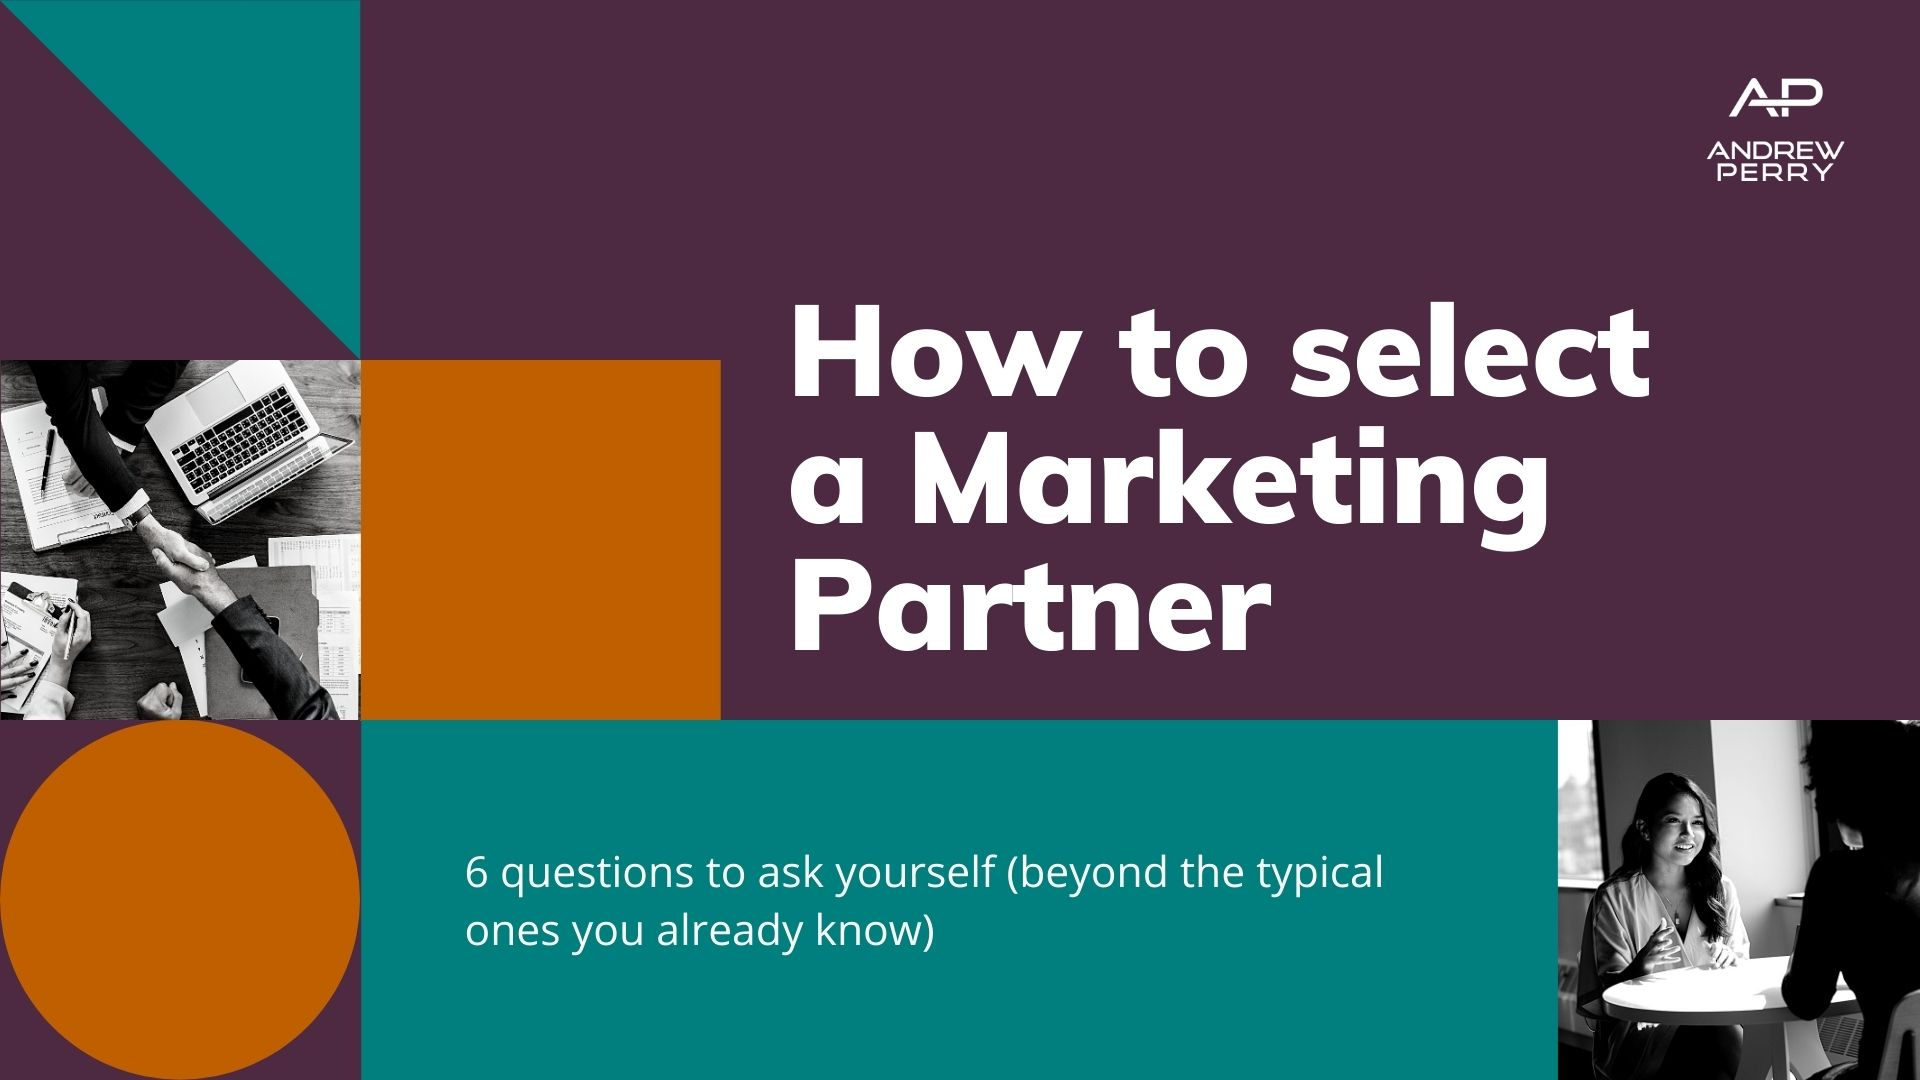 How to select a Marketing Partner